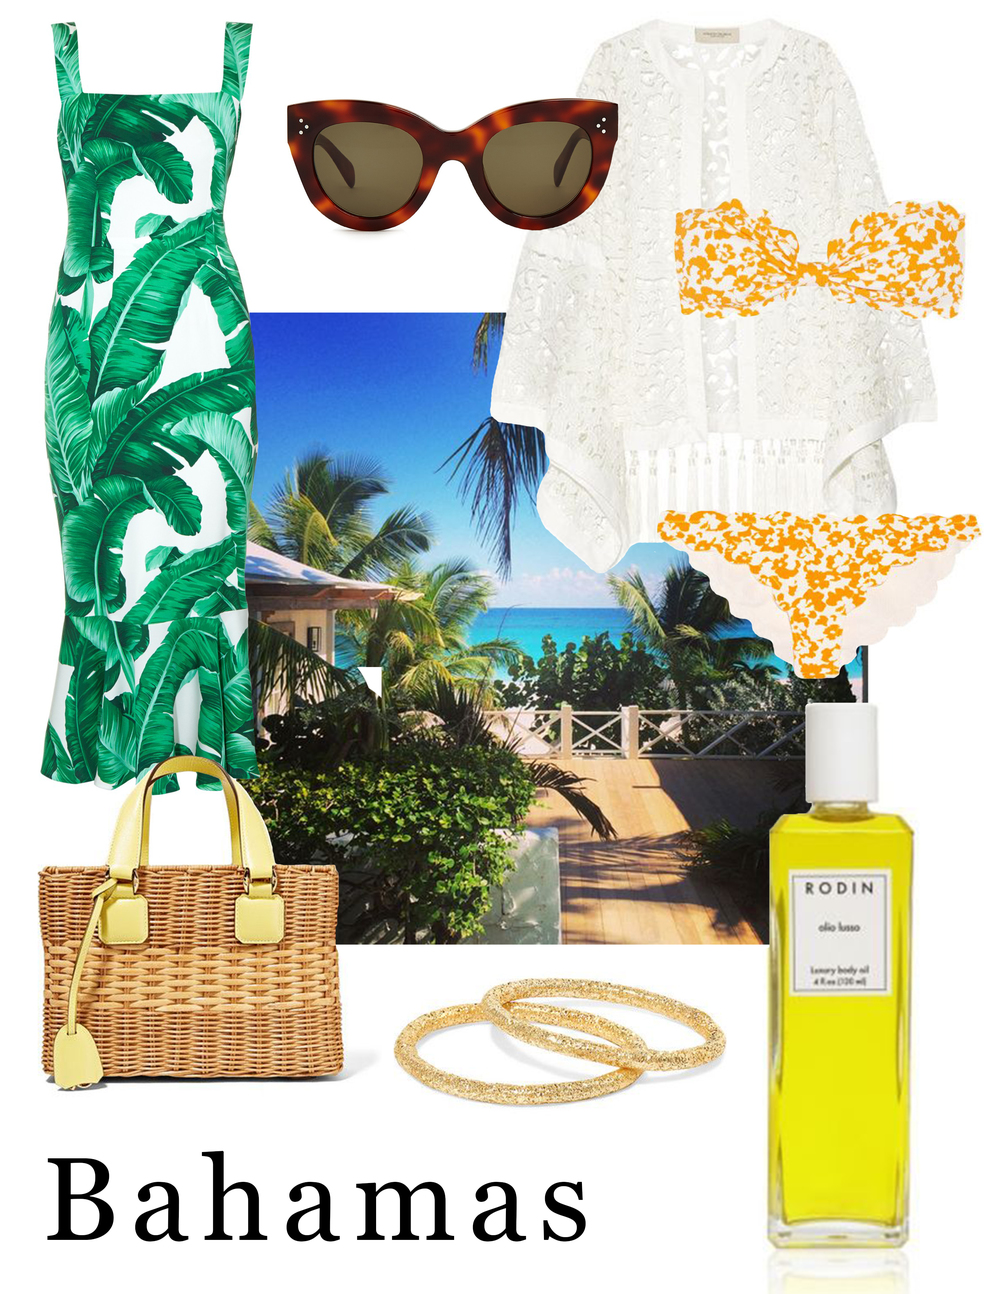 Packing inspiration: dark sunglasses to fend off the Atlantic sun ( Celine ); a palm-leaf-print dress ( Dolce & Gabbana ); carefree hammered gold rings ( Carolina Bucci) ; a classic white coverup ( Adriana Degreas ); a vibrant swimsuit ( Marysia ); a classic wicker bag ( Mark Cross ); nourishing body oil ( Rodin ).